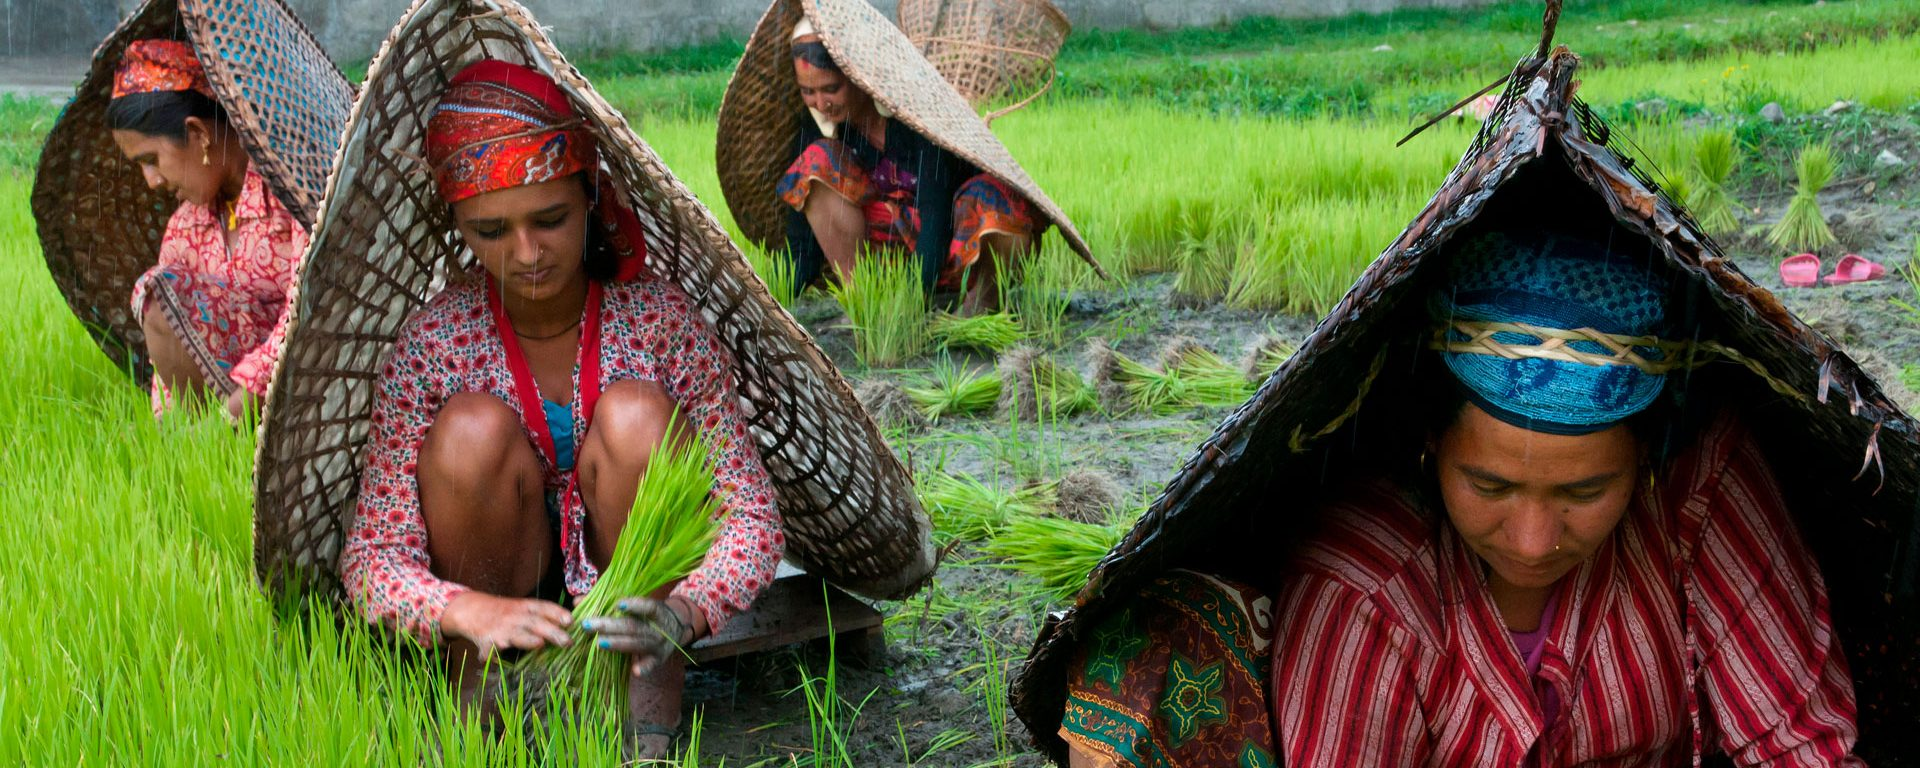 Female farmers at work in rice nursery, with rain protection, Pokhara, Nepal